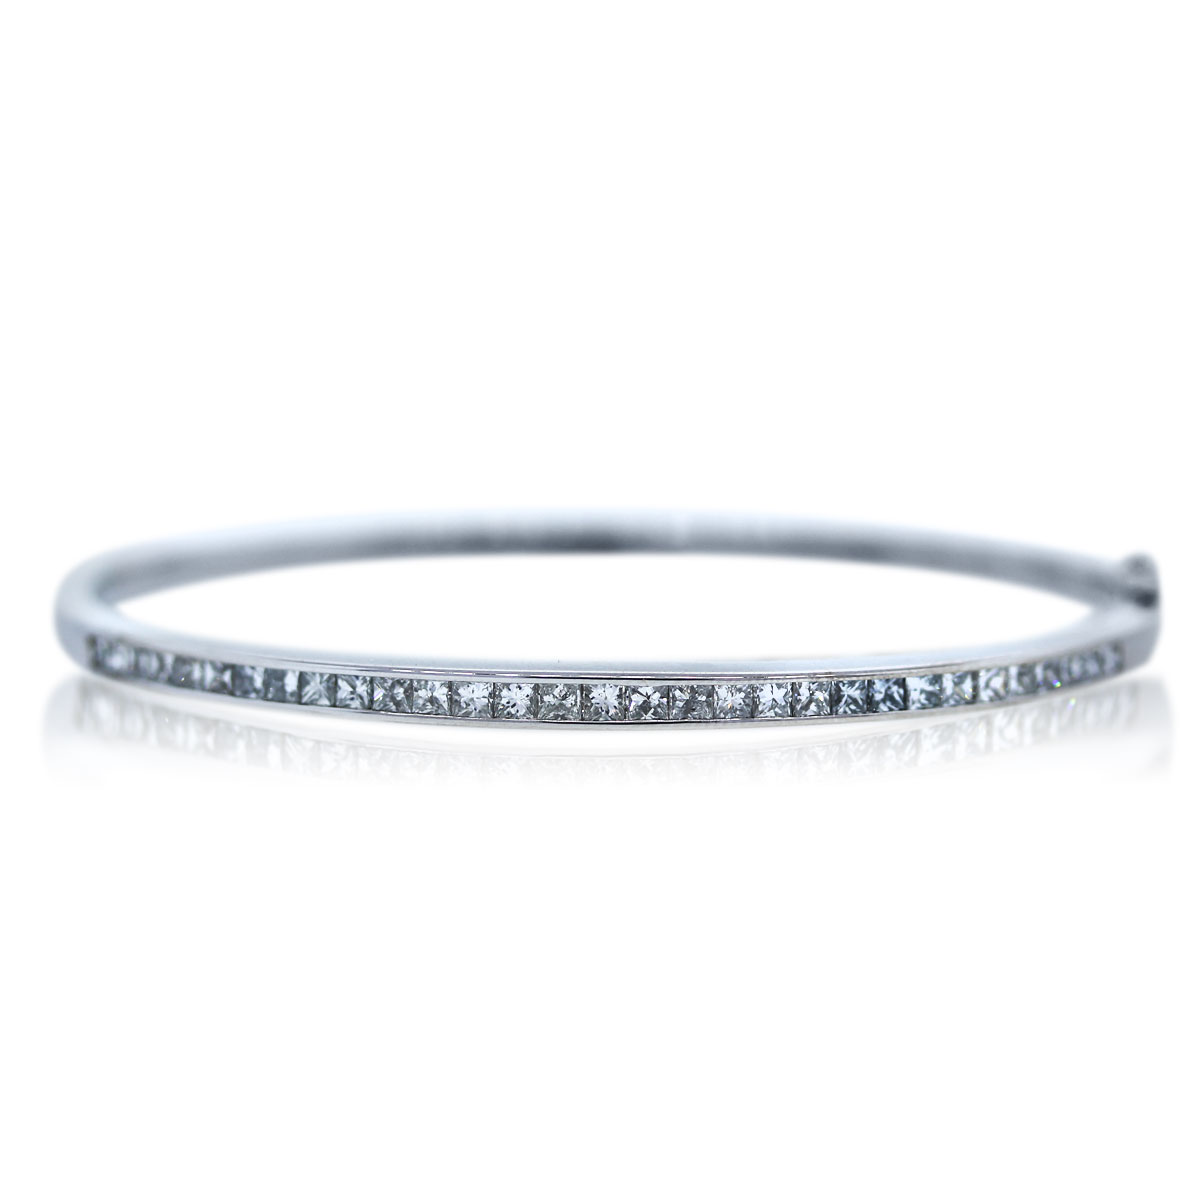 White Gold Invisibly Set Diamond Bangle Bracelet